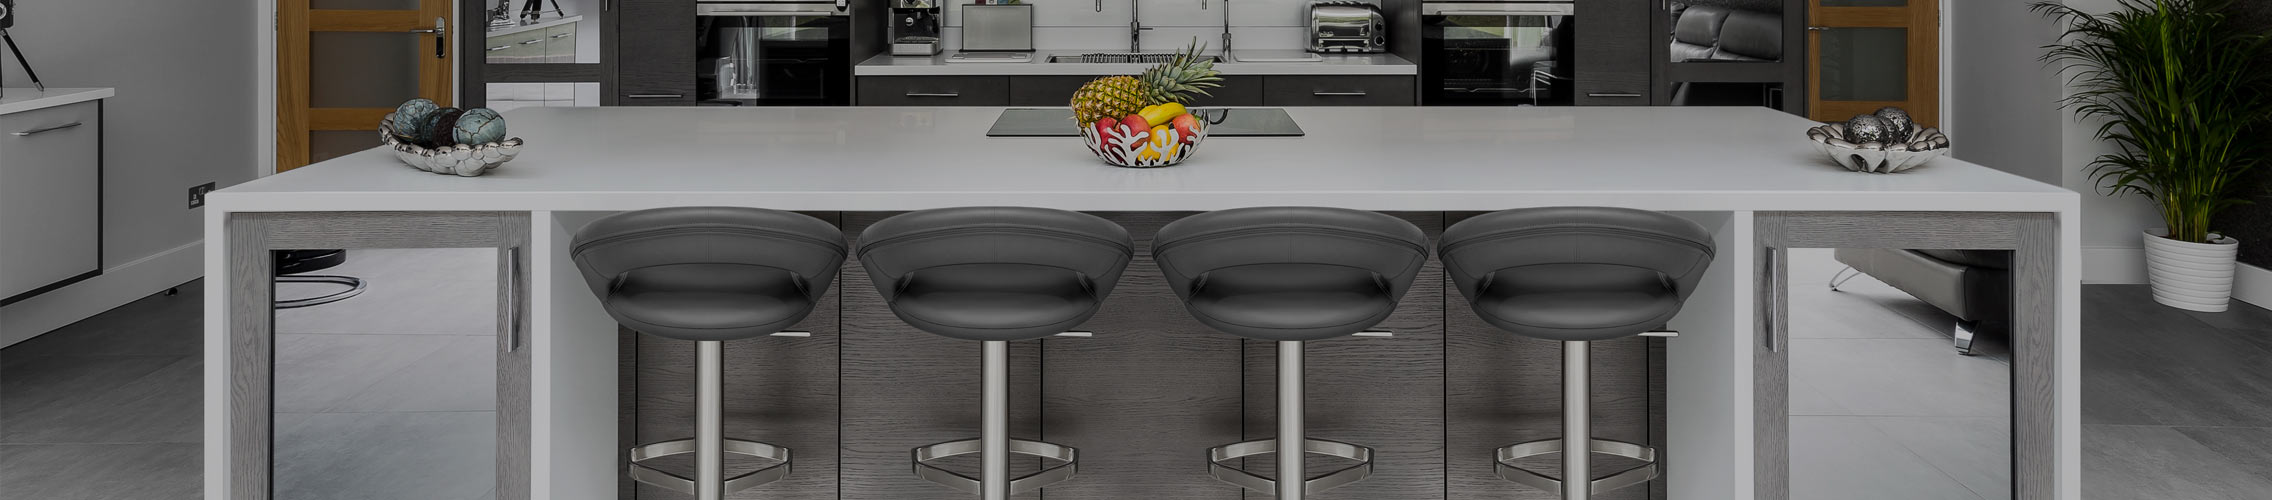 Real Leather Breakfast Bar Stools